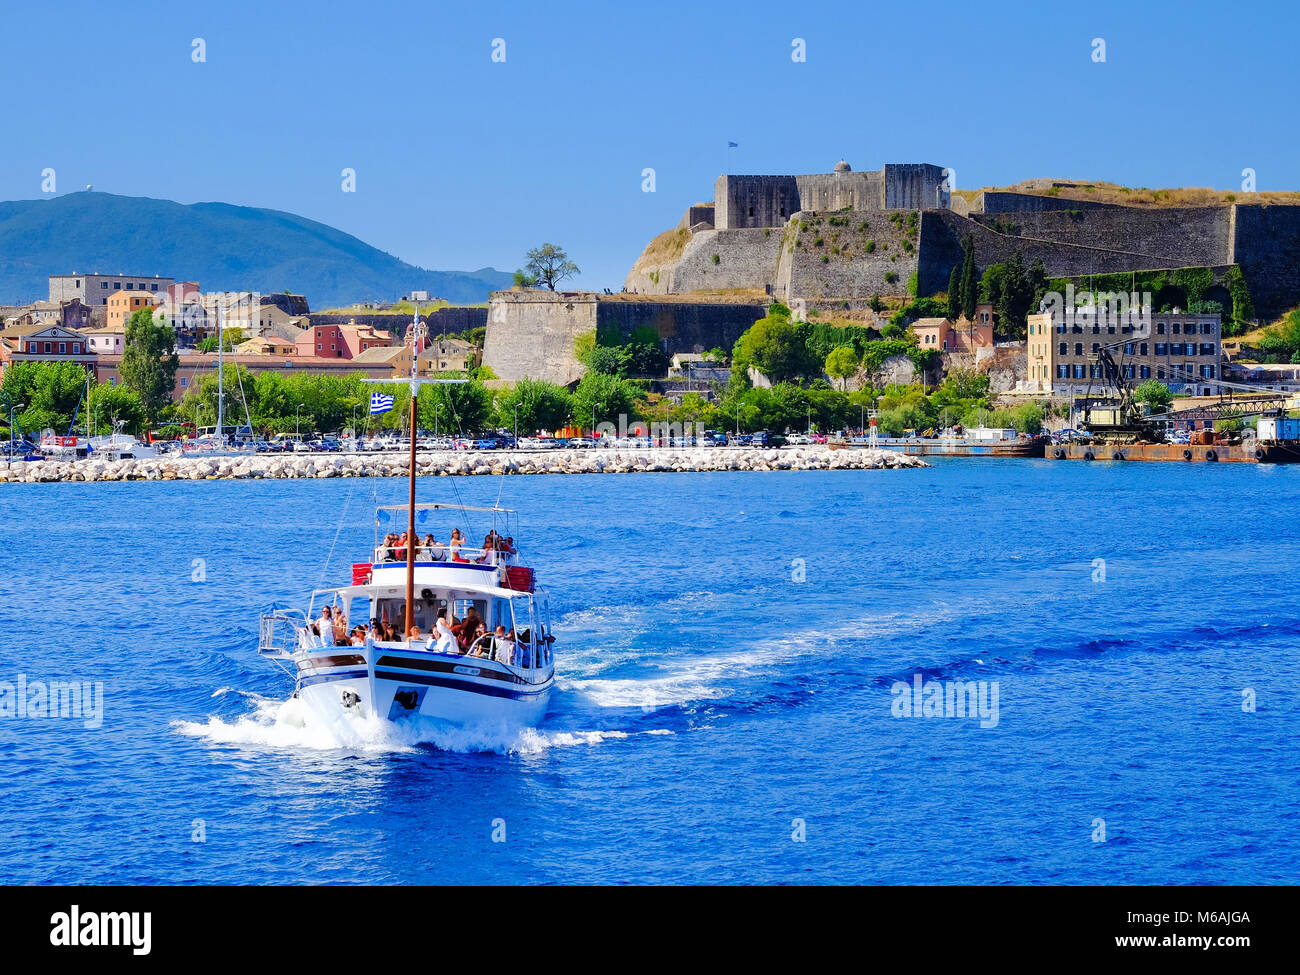 Boat sailing in daily trips around Corfu island with the old venetian fortress walls in the background. - Stock Image